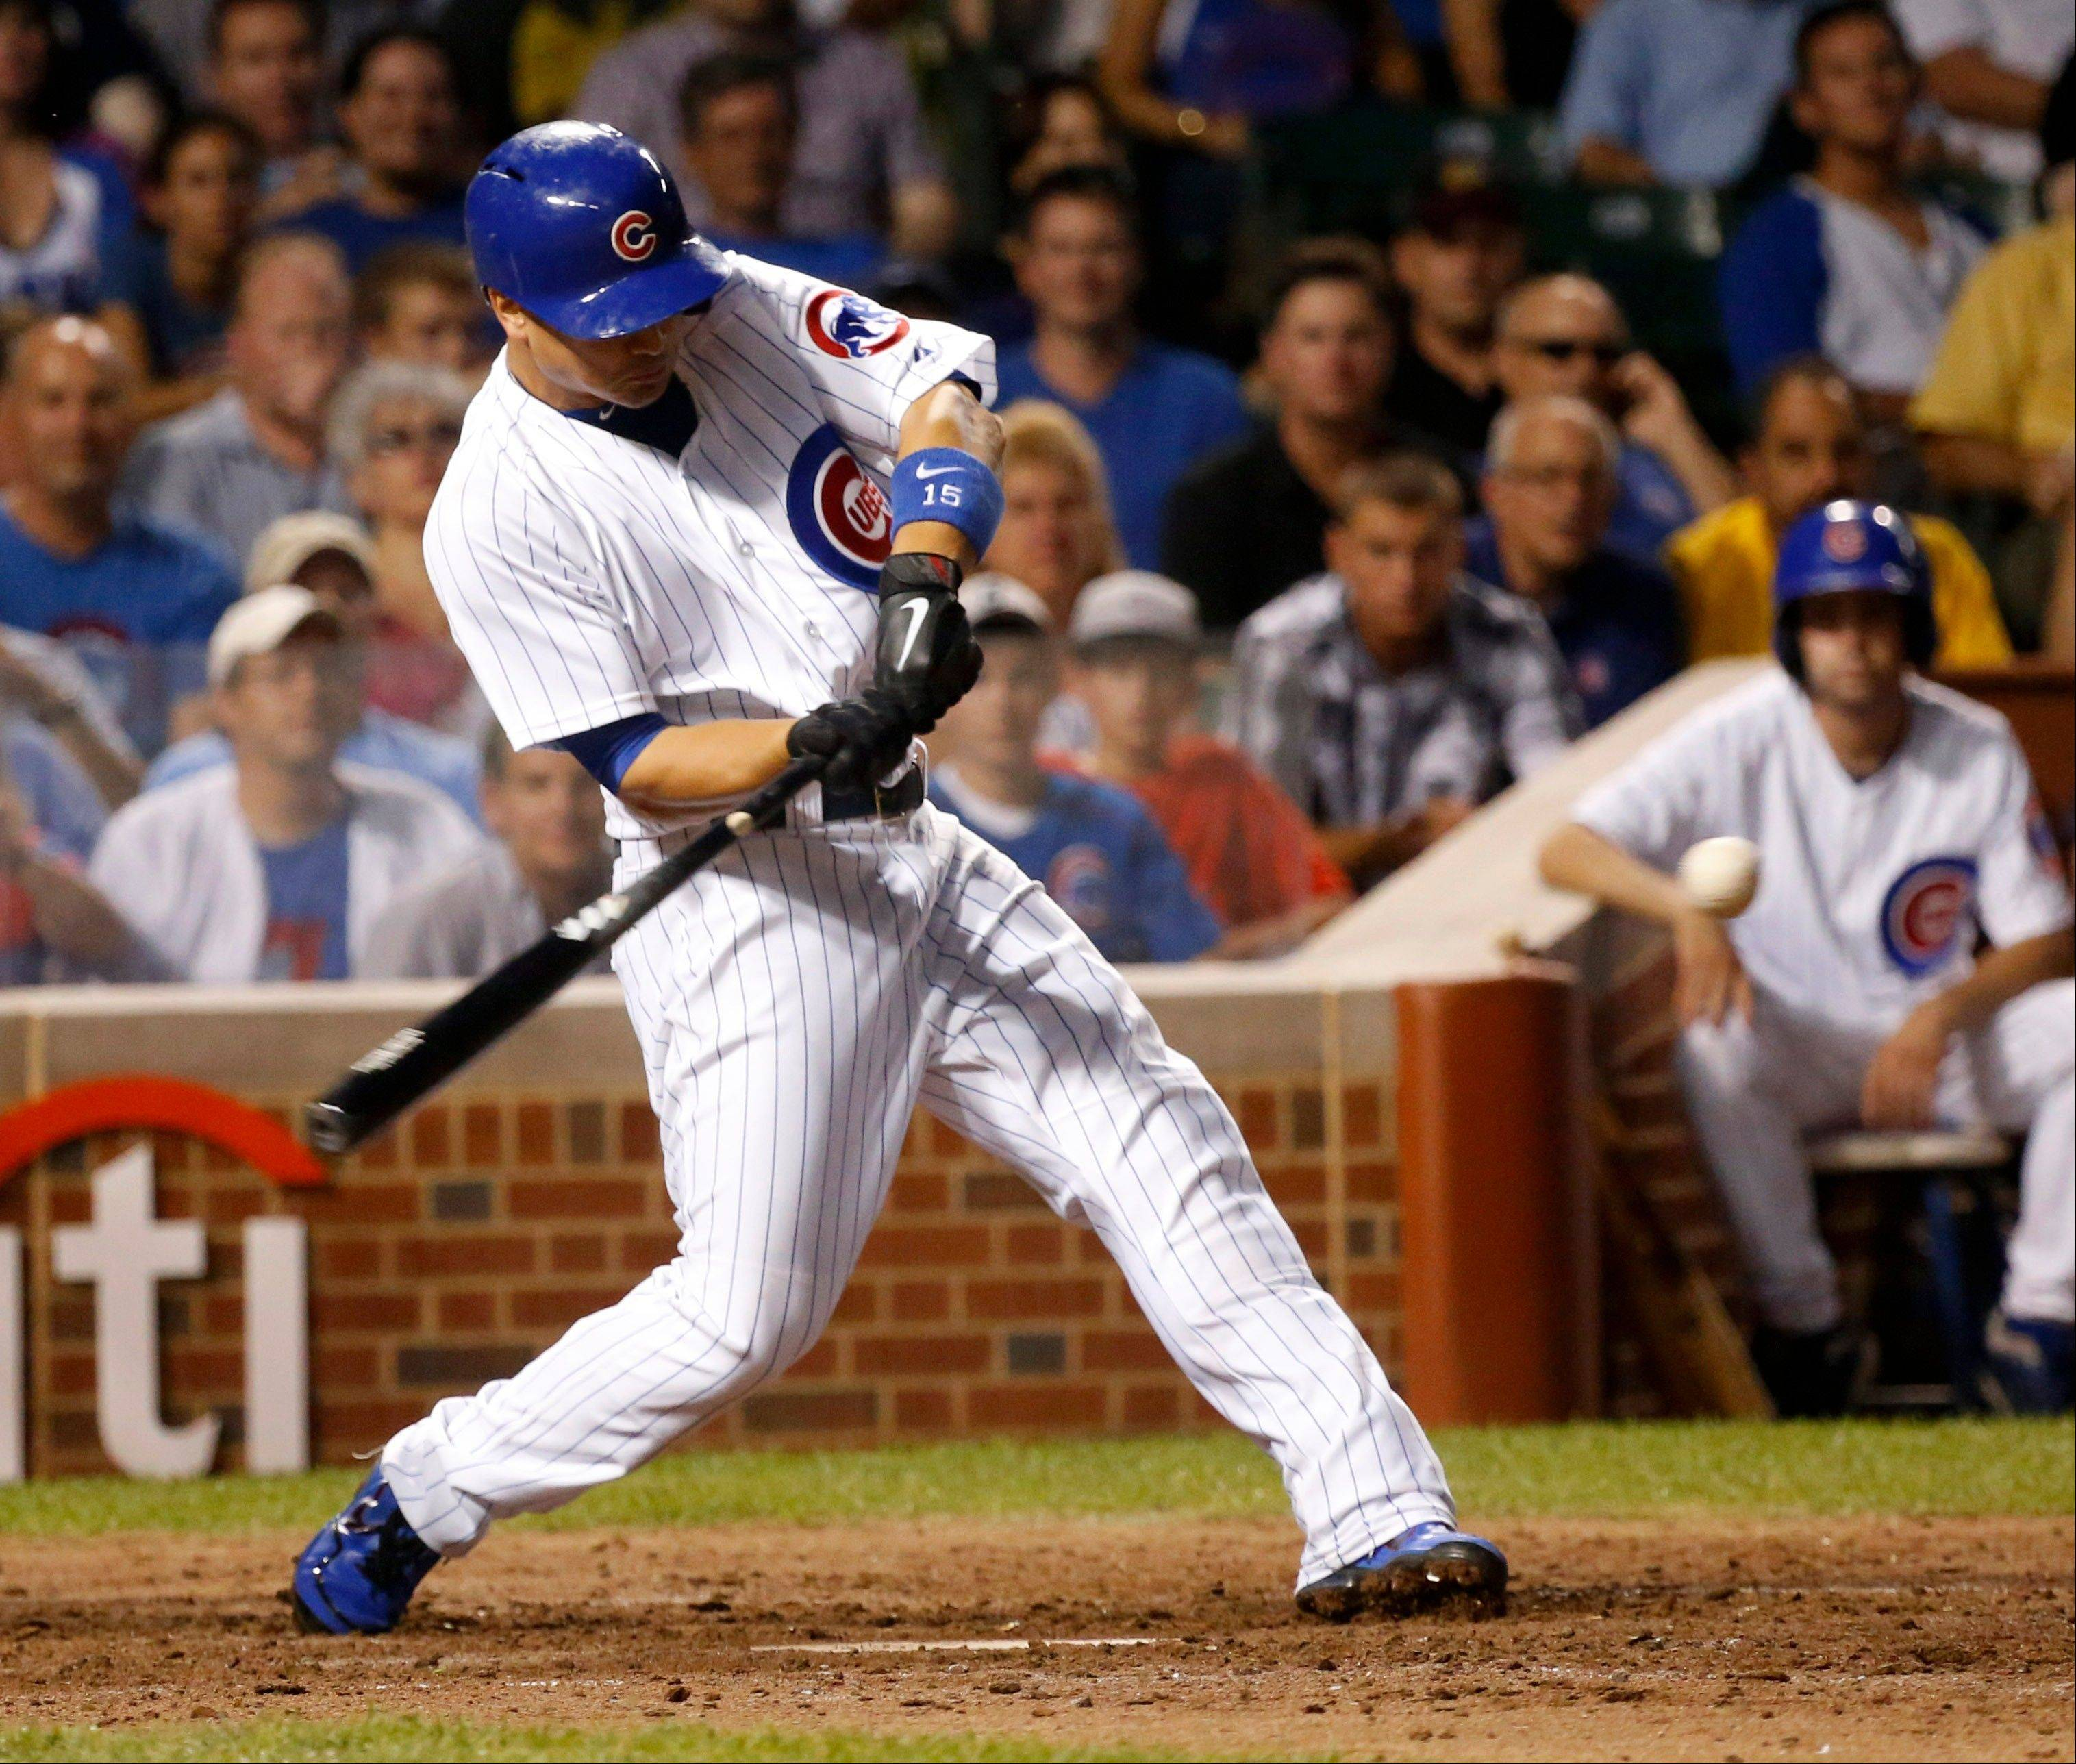 The Cubs' Darwin Barney swings on a three-run home run off Los Angeles Angels starting pitcher Joe Blanton during Tuesday night's game at Wrigley Field.